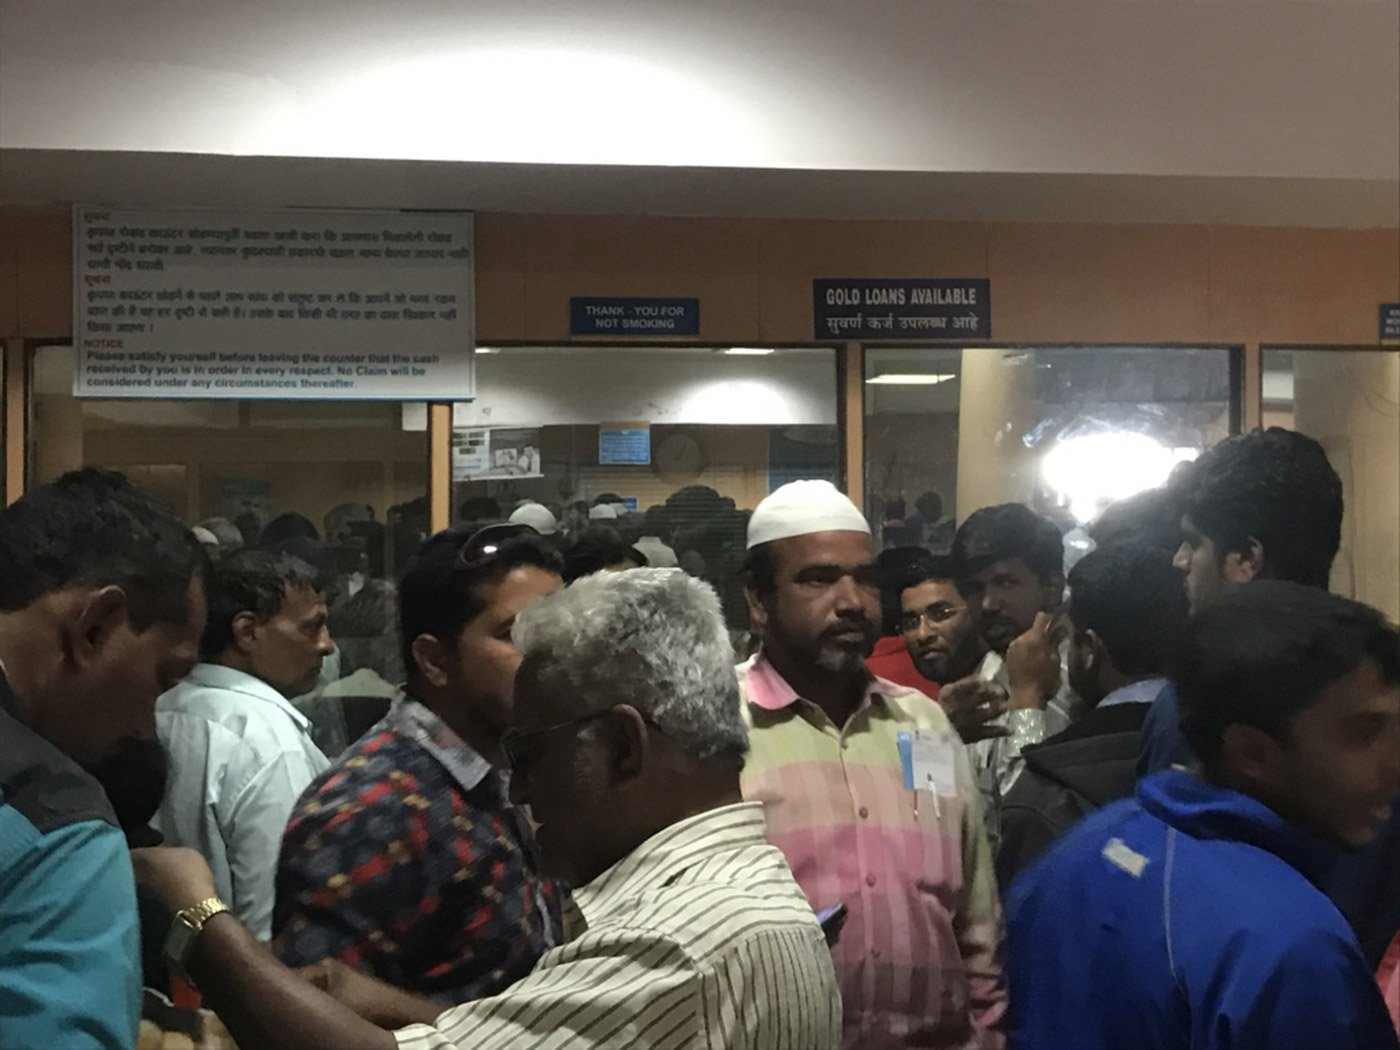 Frustrated members of the public throng the inside of the Shahganj branch of the State Bank of Hyderabad. Outside, the queue is nearly a kilometre long